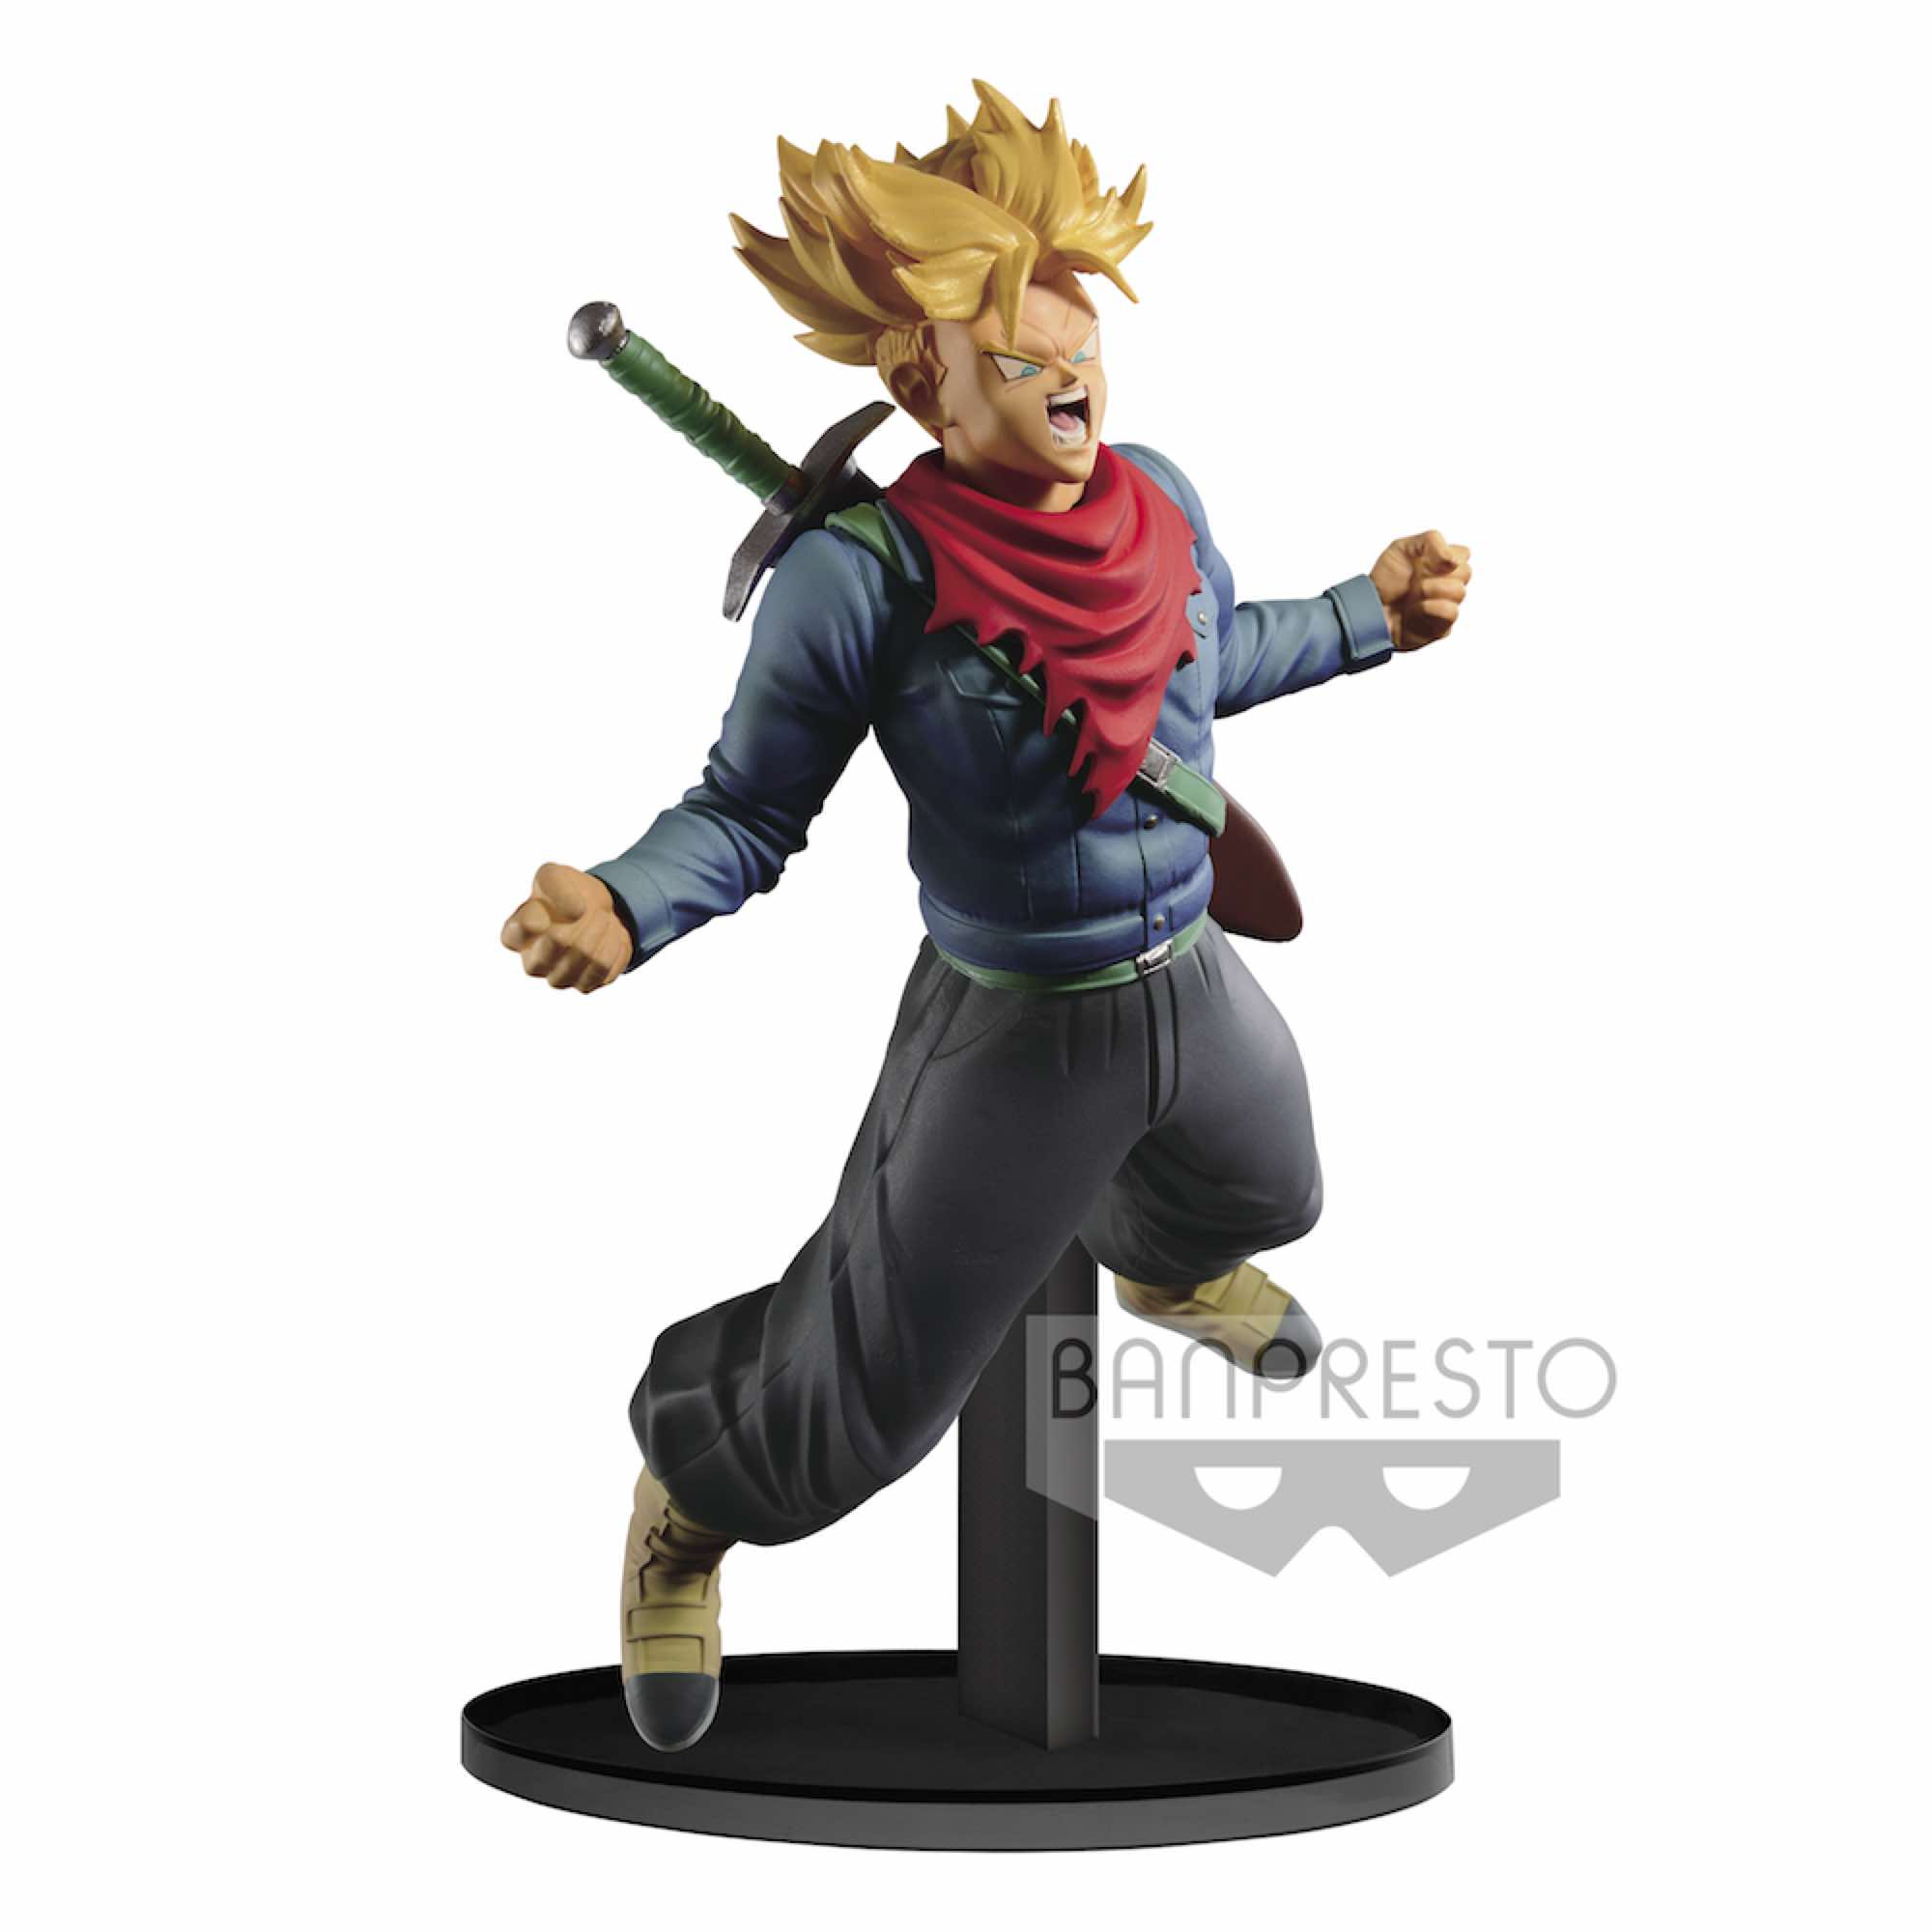 TRUNKS SUPER SAIYAN POWER FIGURA 18 CM DRAGON BALL Z BWFC